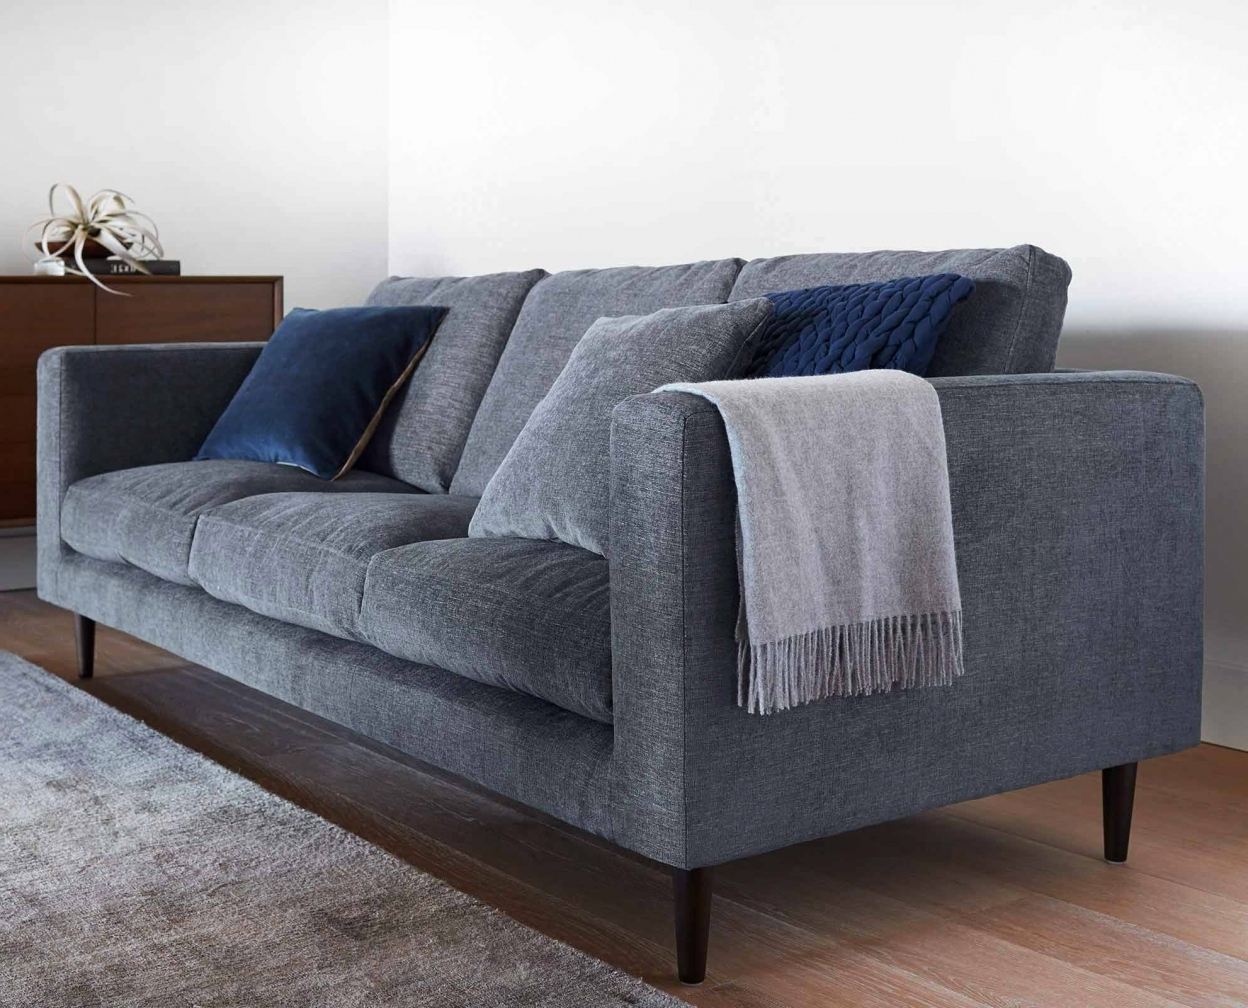 Dania Sectional Sofas In Trendy Modern Sectional Sofas Cheap Capital Dania The Hagen Sofa Offers (View 13 of 15)